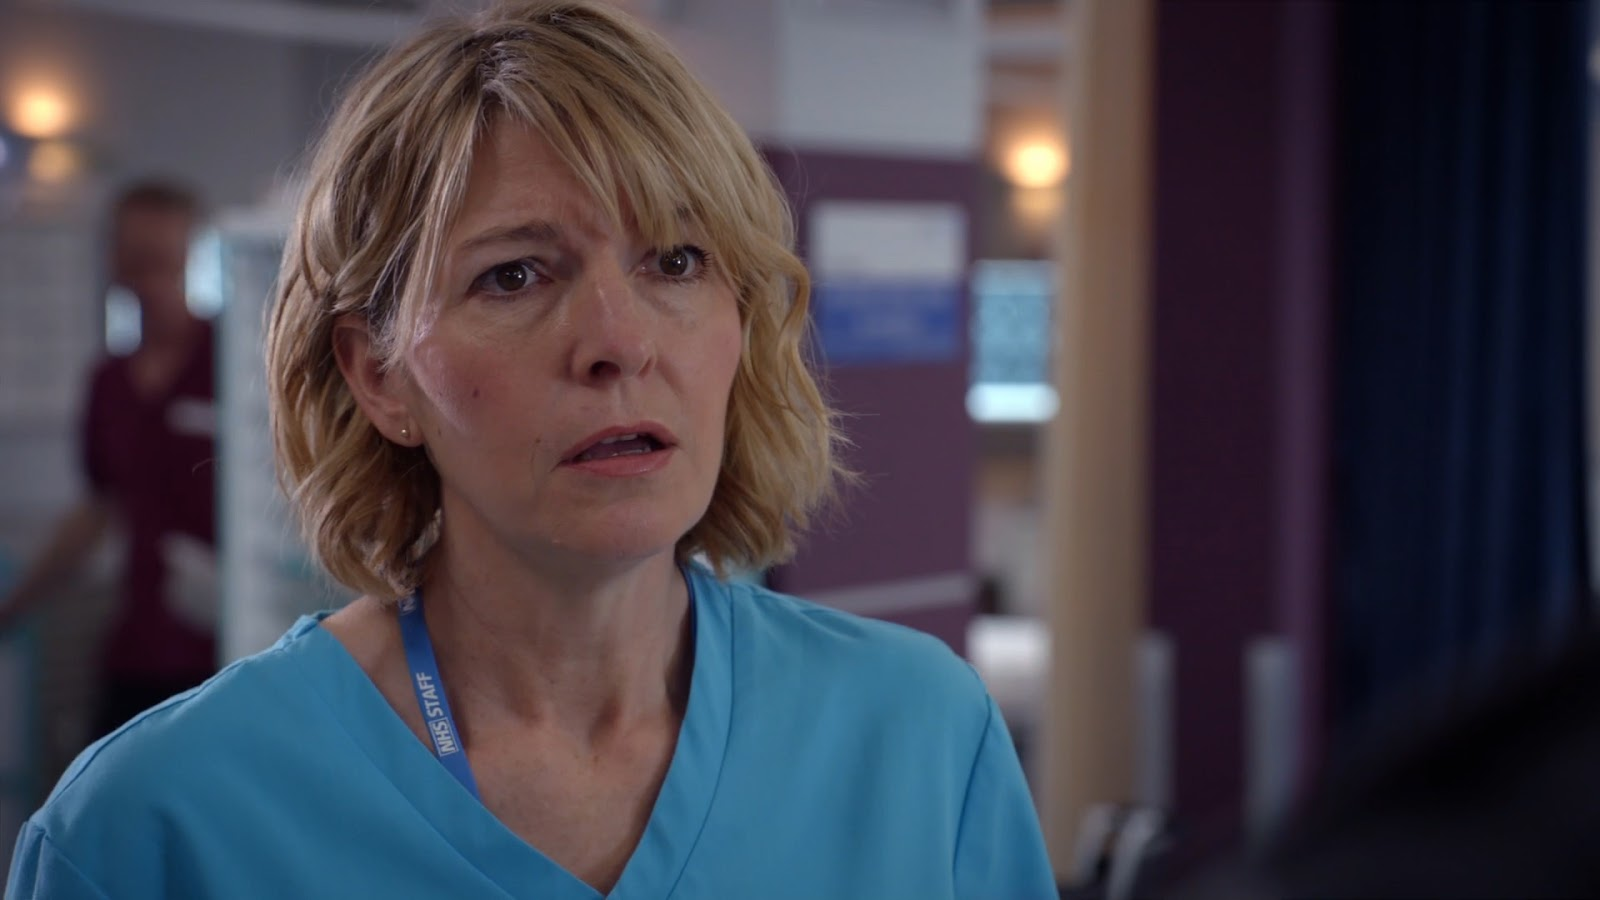 Jemma Redgrave cold blood